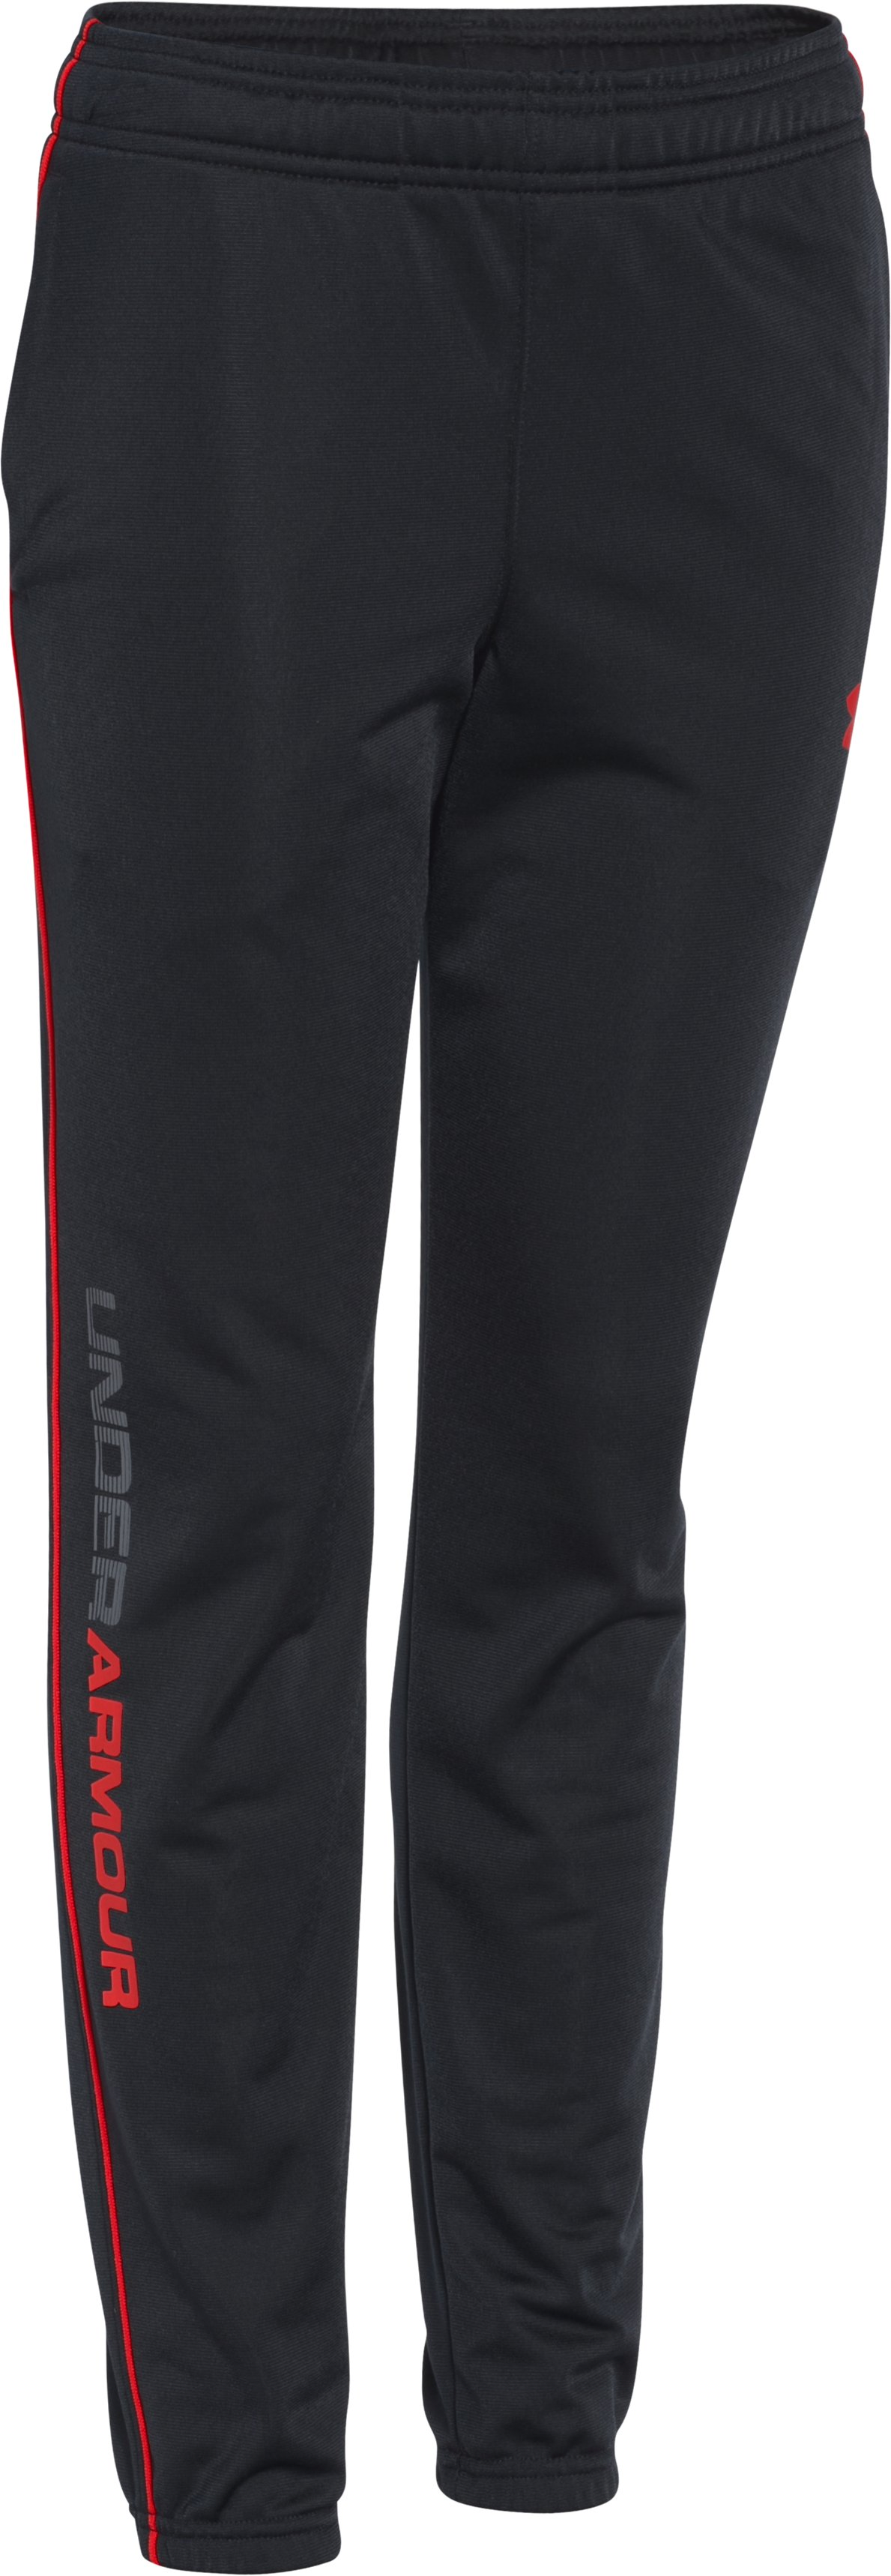 Boys' UA Contender Tapered Warm-Up Pants, Black